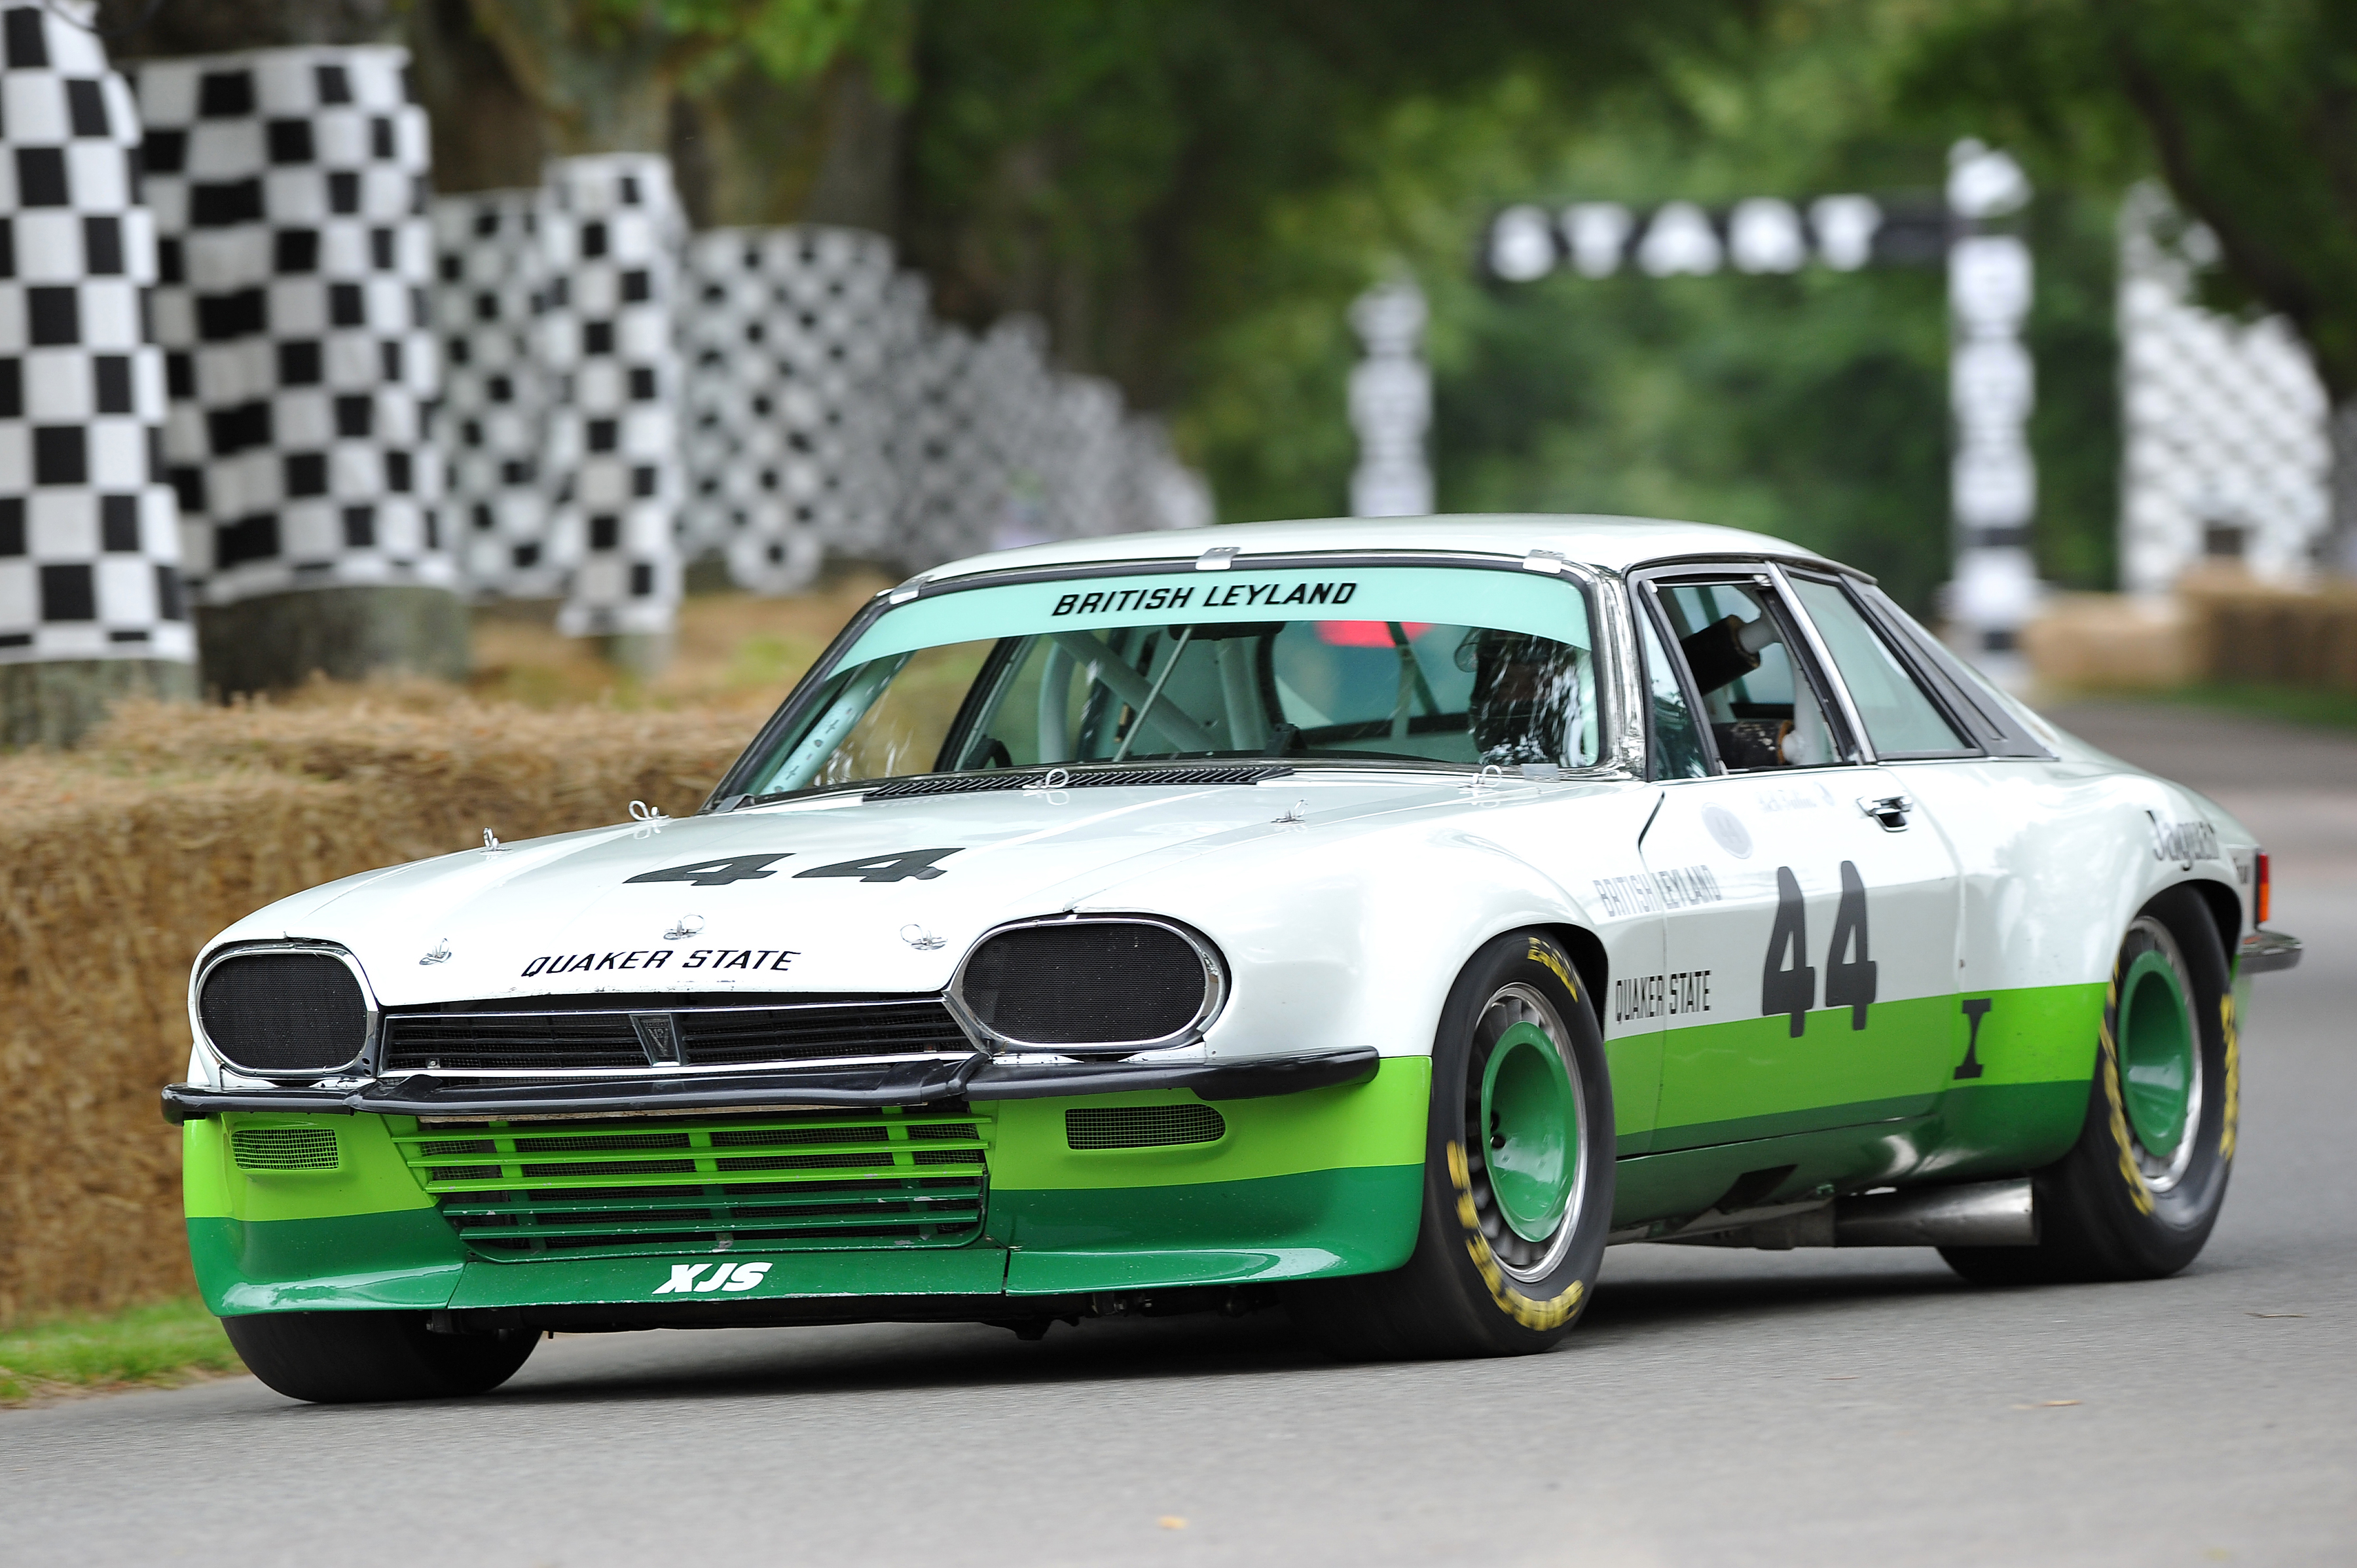 1978 Jaguar XJ-S Group 44 Trans-Am Race Car – Build Race Party